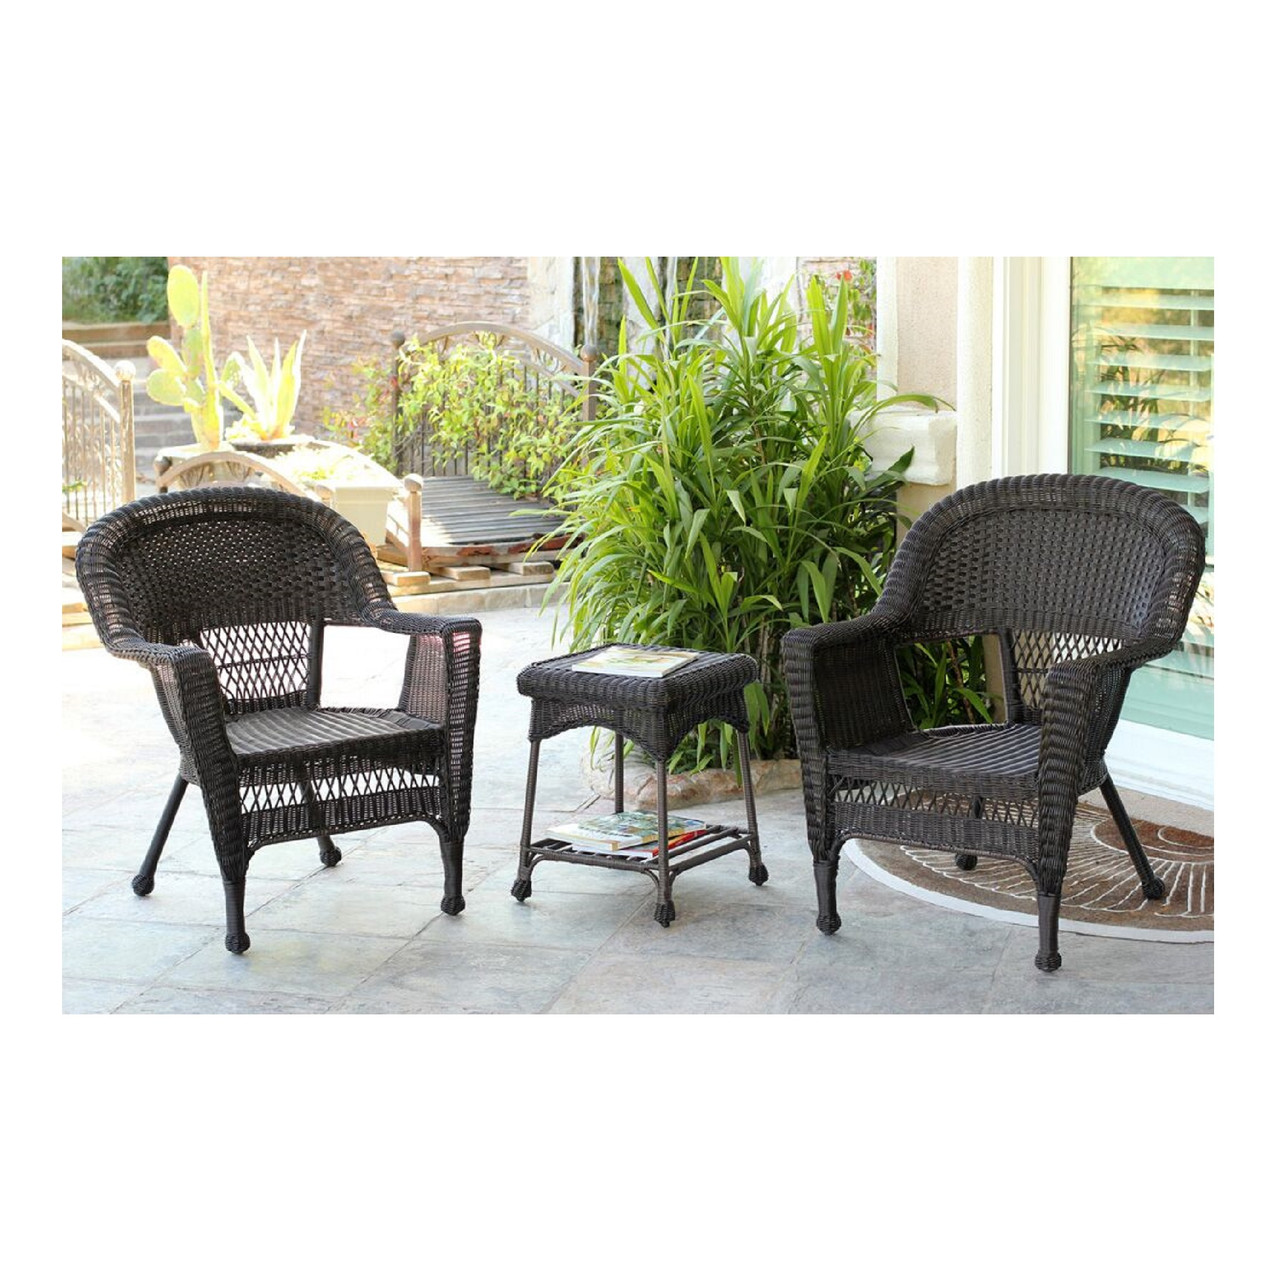 3-piece Espresso Brown Resin Wicker Patio Chairs & End